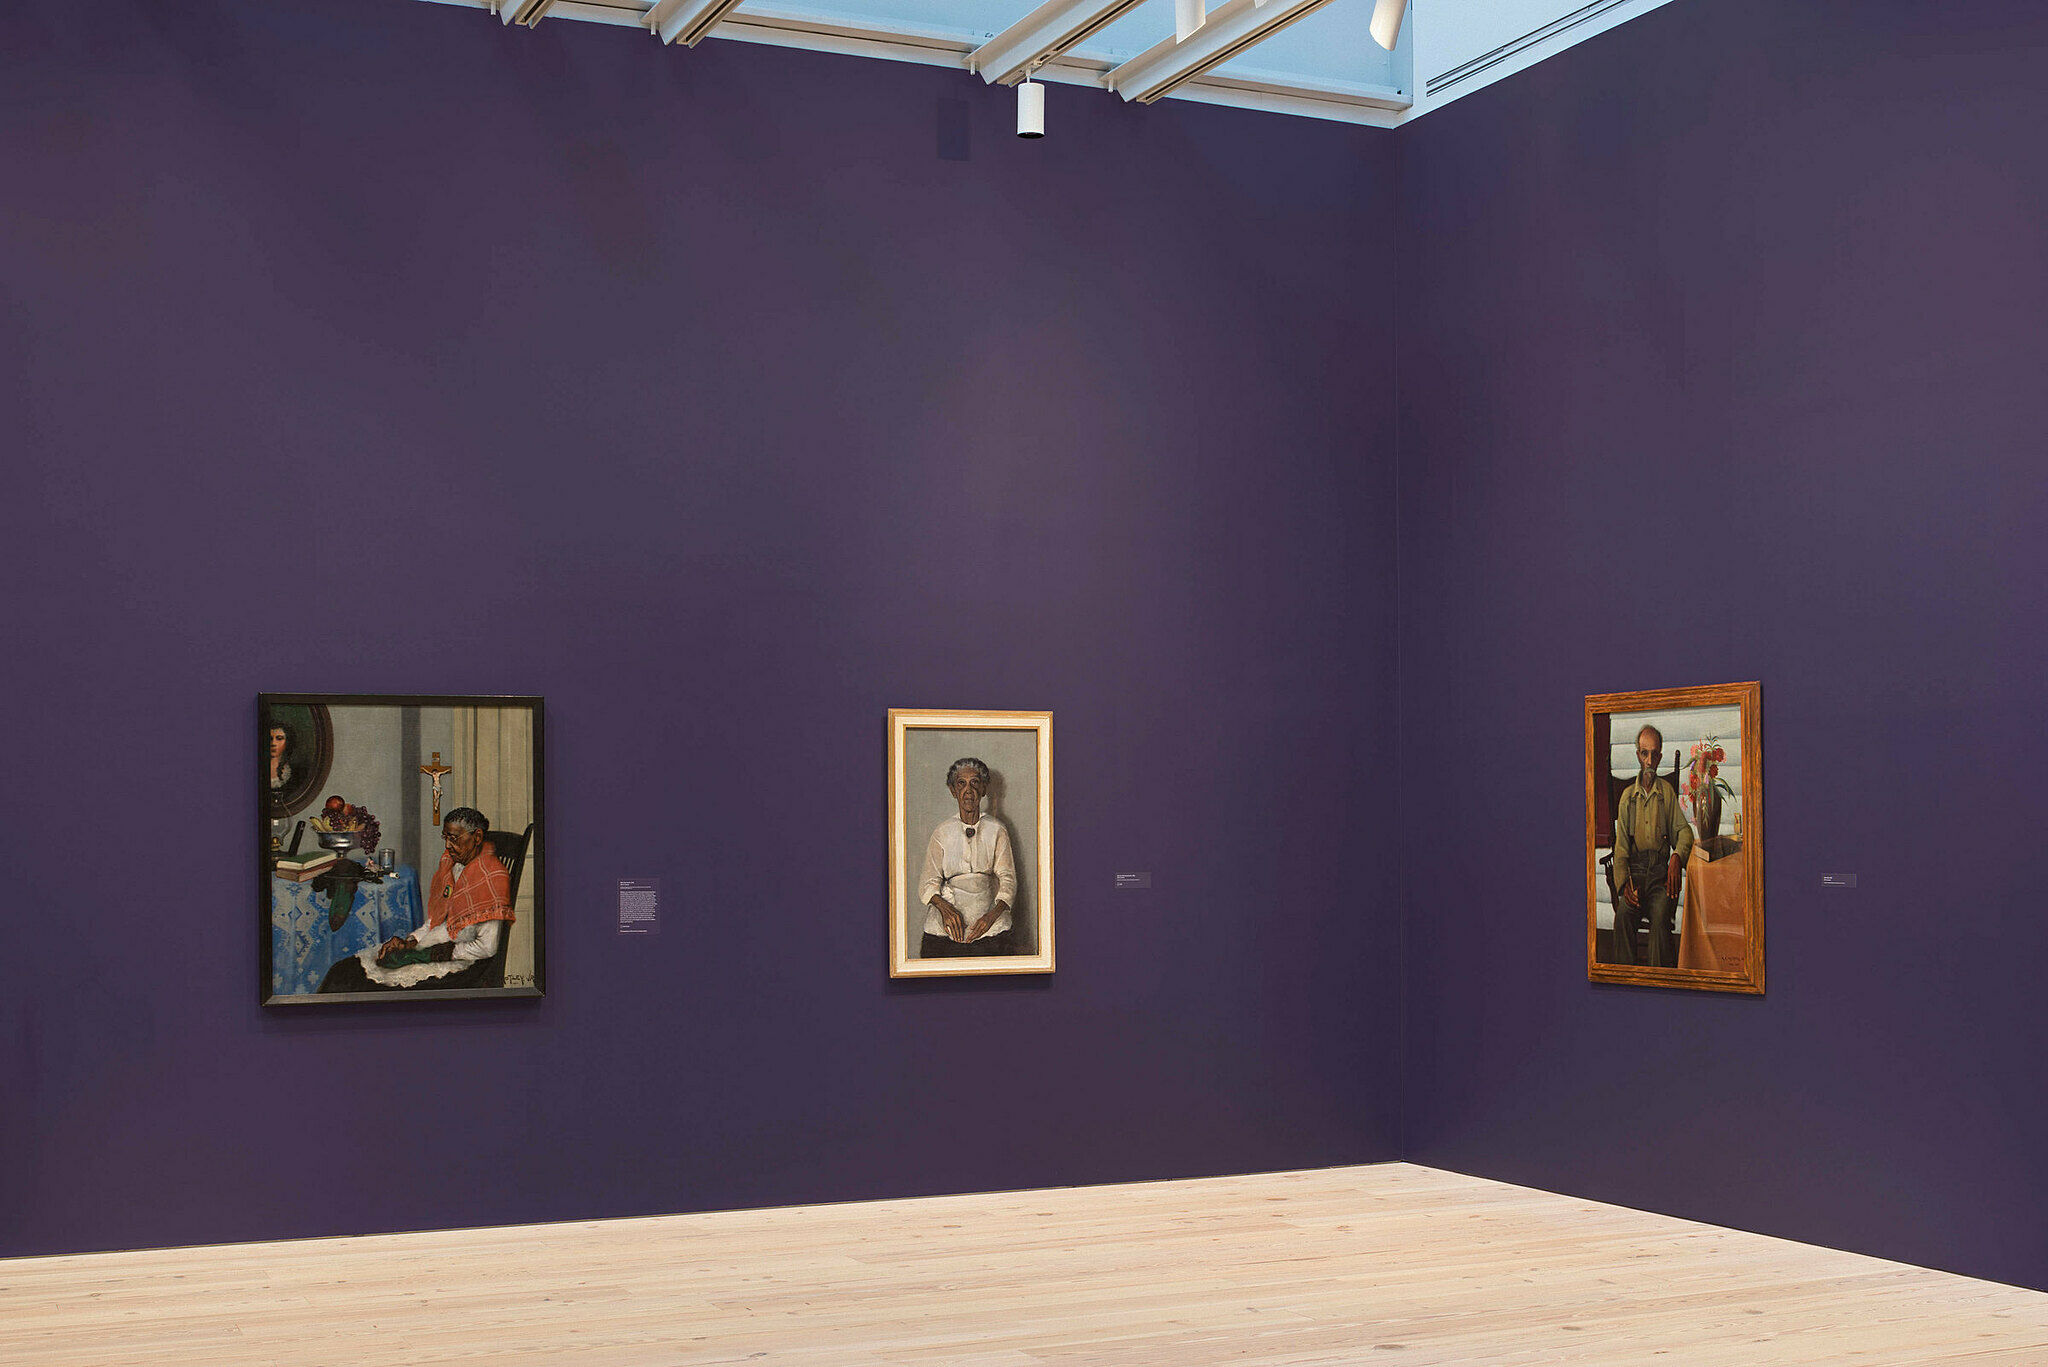 Three paintings in a gallery with purple walls.